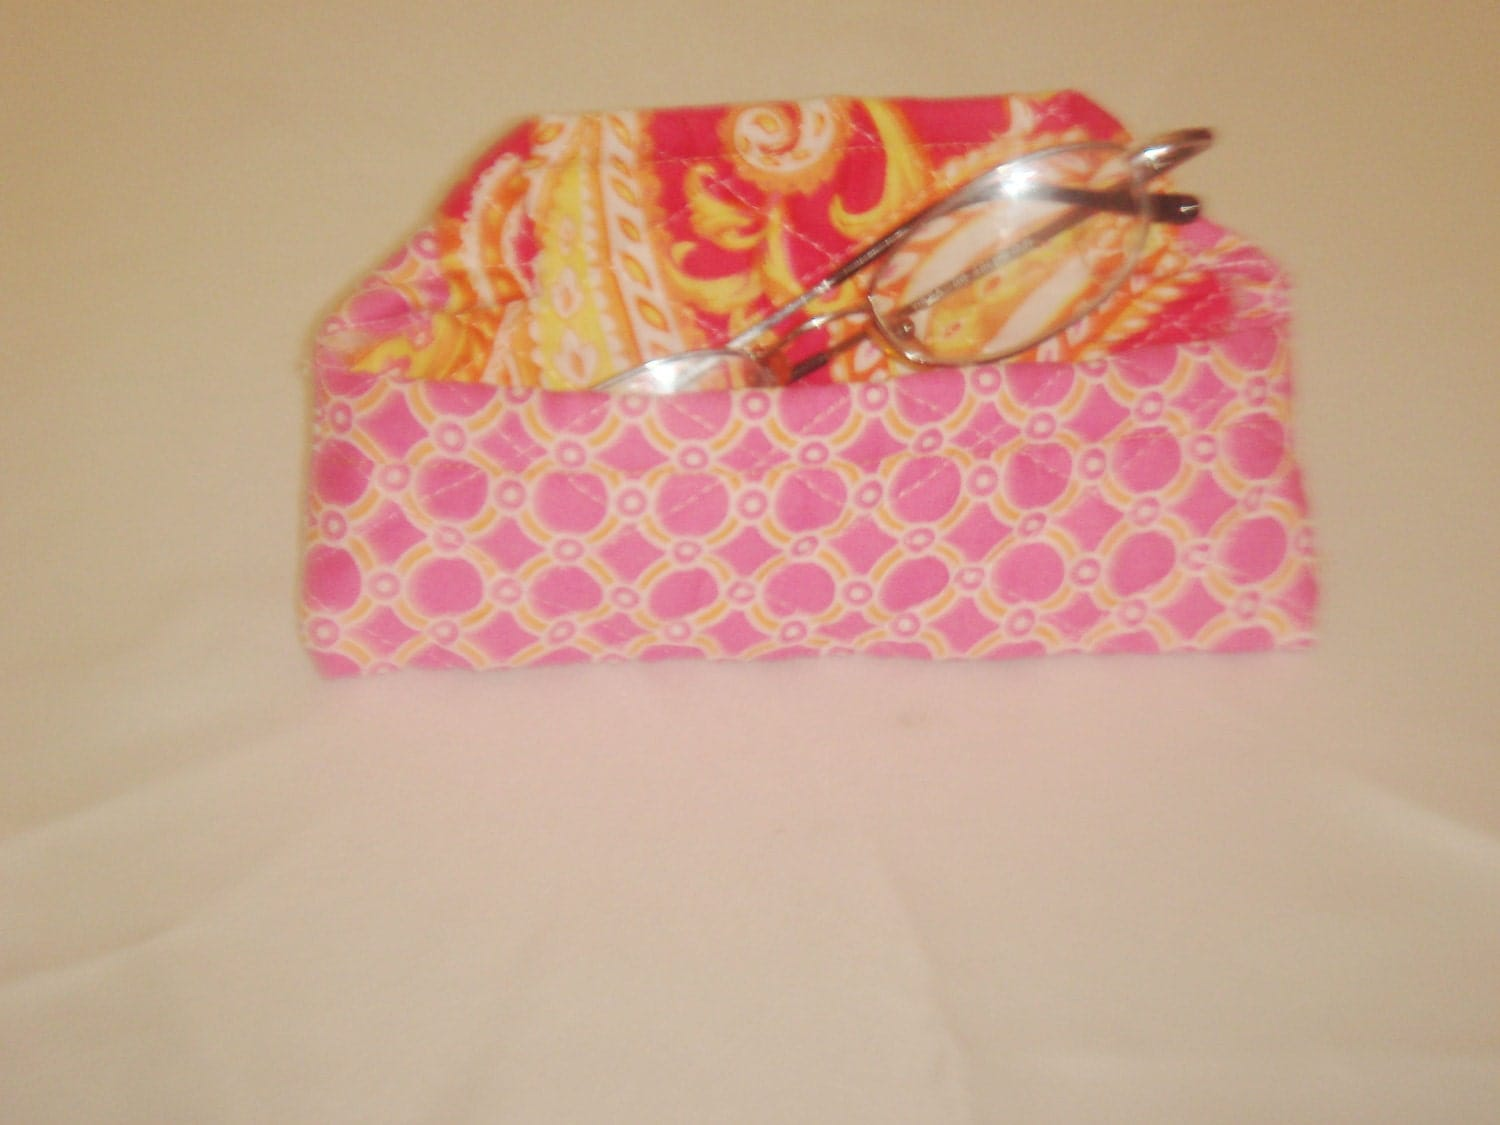 ravishingcreations on etsy eyeglass case